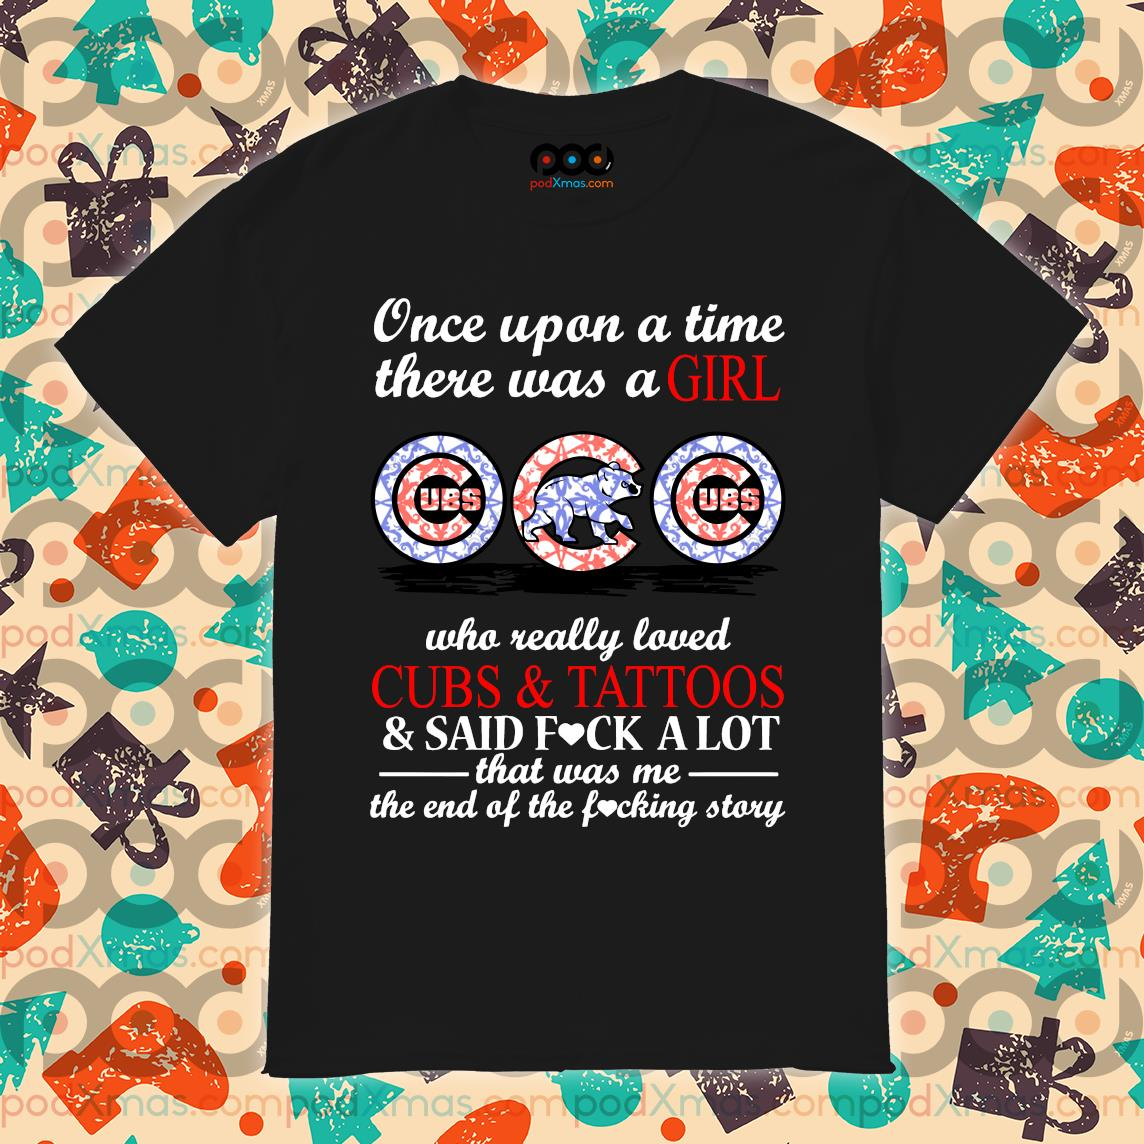 There was a GIRL CHICAGO CUBS who really loved Cubs and Tattoos shirt